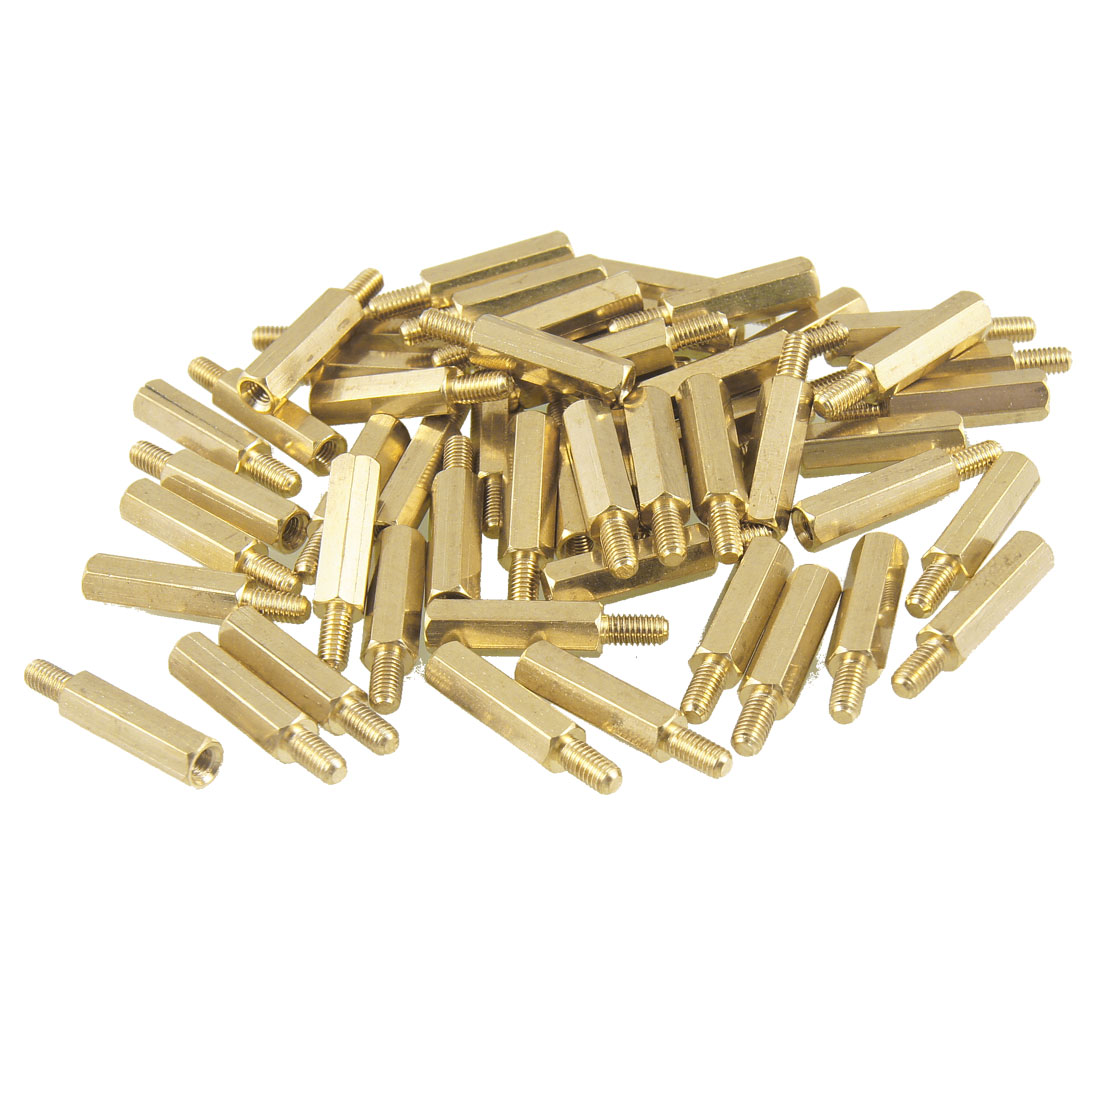 50 Pcs M3 Male x M3 Female 16mm Body Gold Tone Hex PCB Standoff Spacers